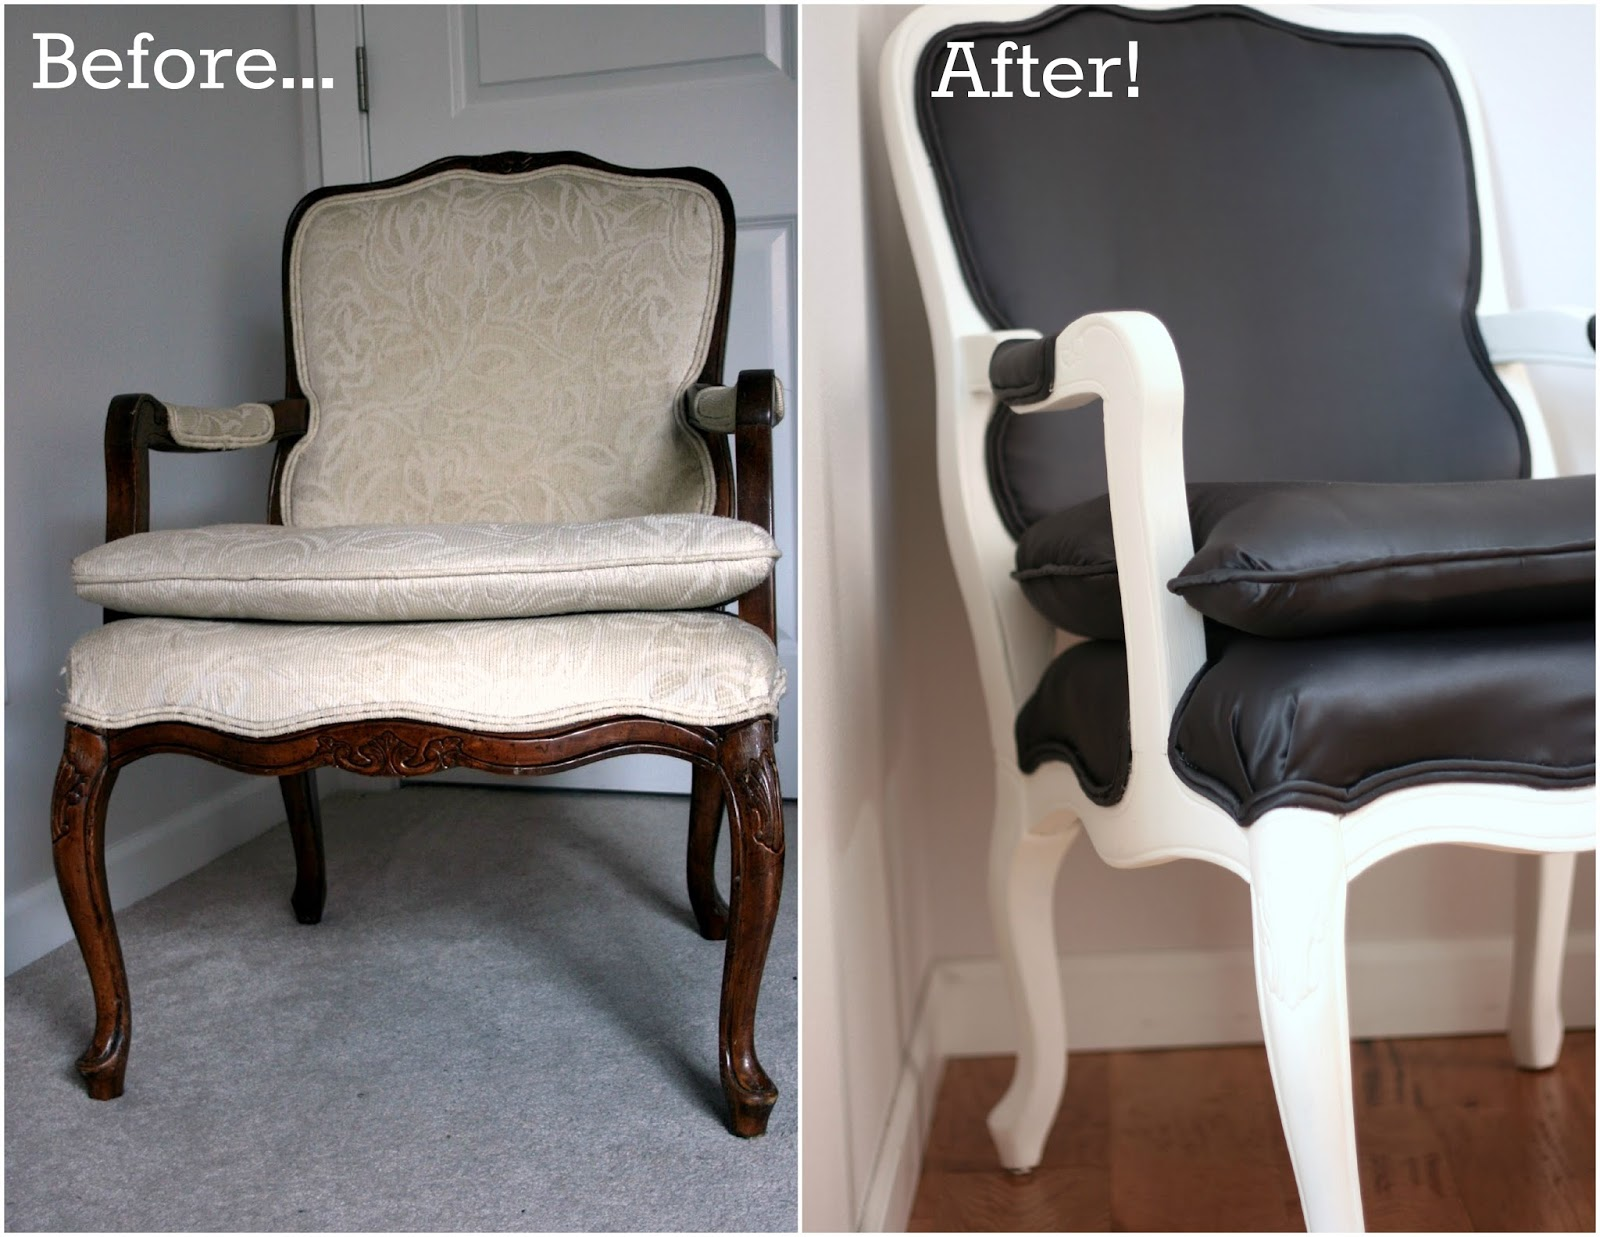 Refurbished Chairs The Finished Product My Refurbished Louis Chair Part 3